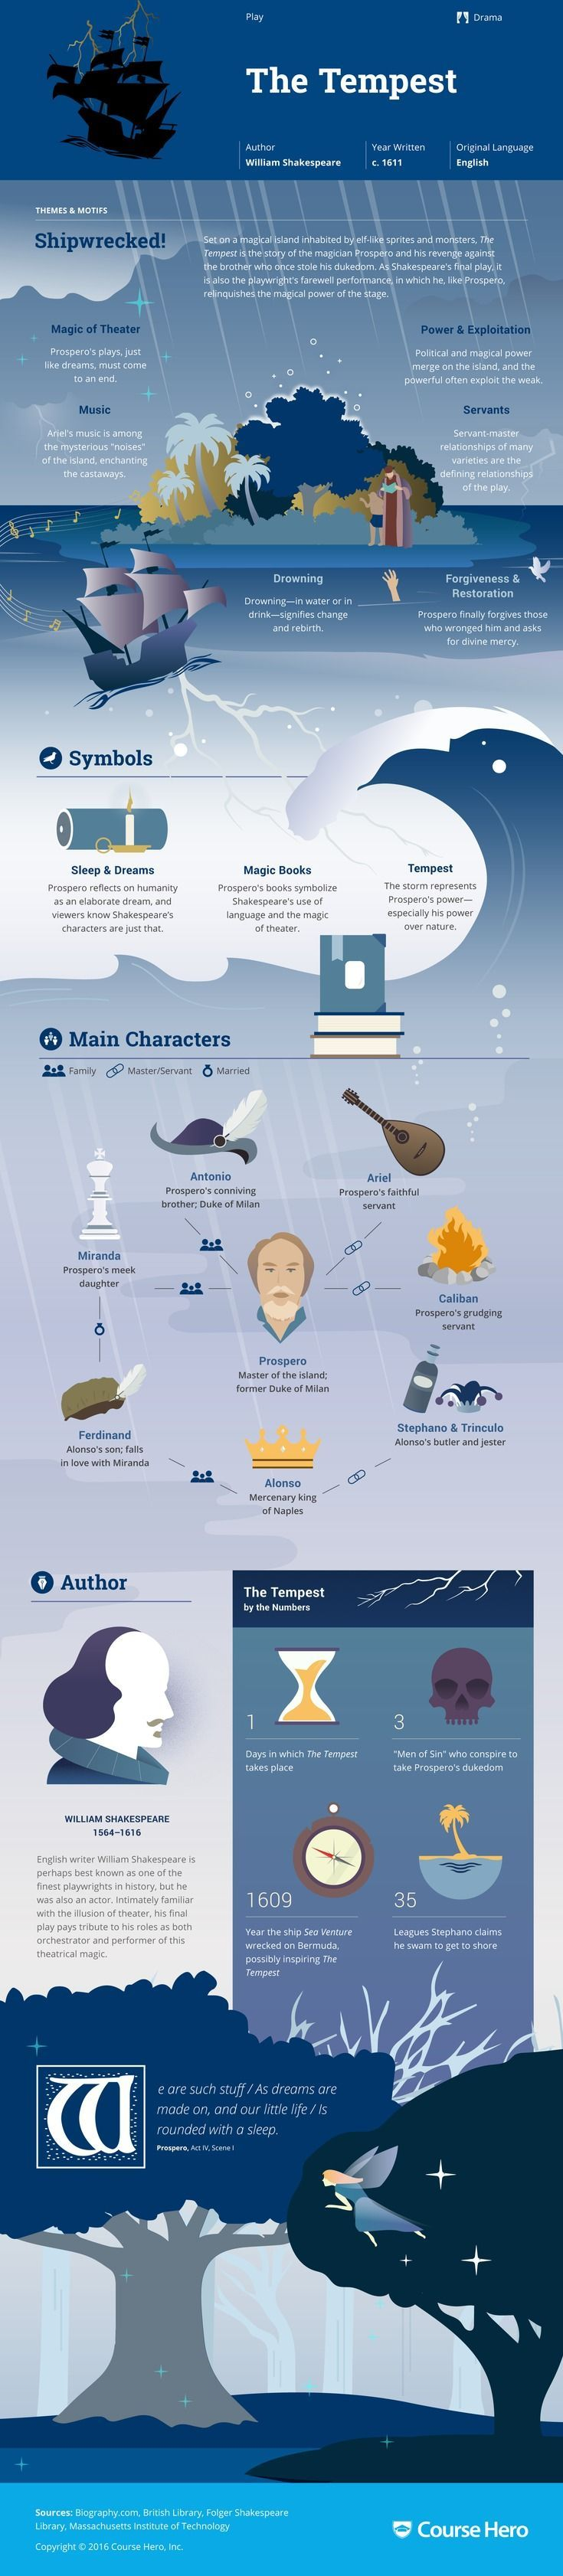 This @CourseHero infographic on The Tempest is both visually stunning and informative!